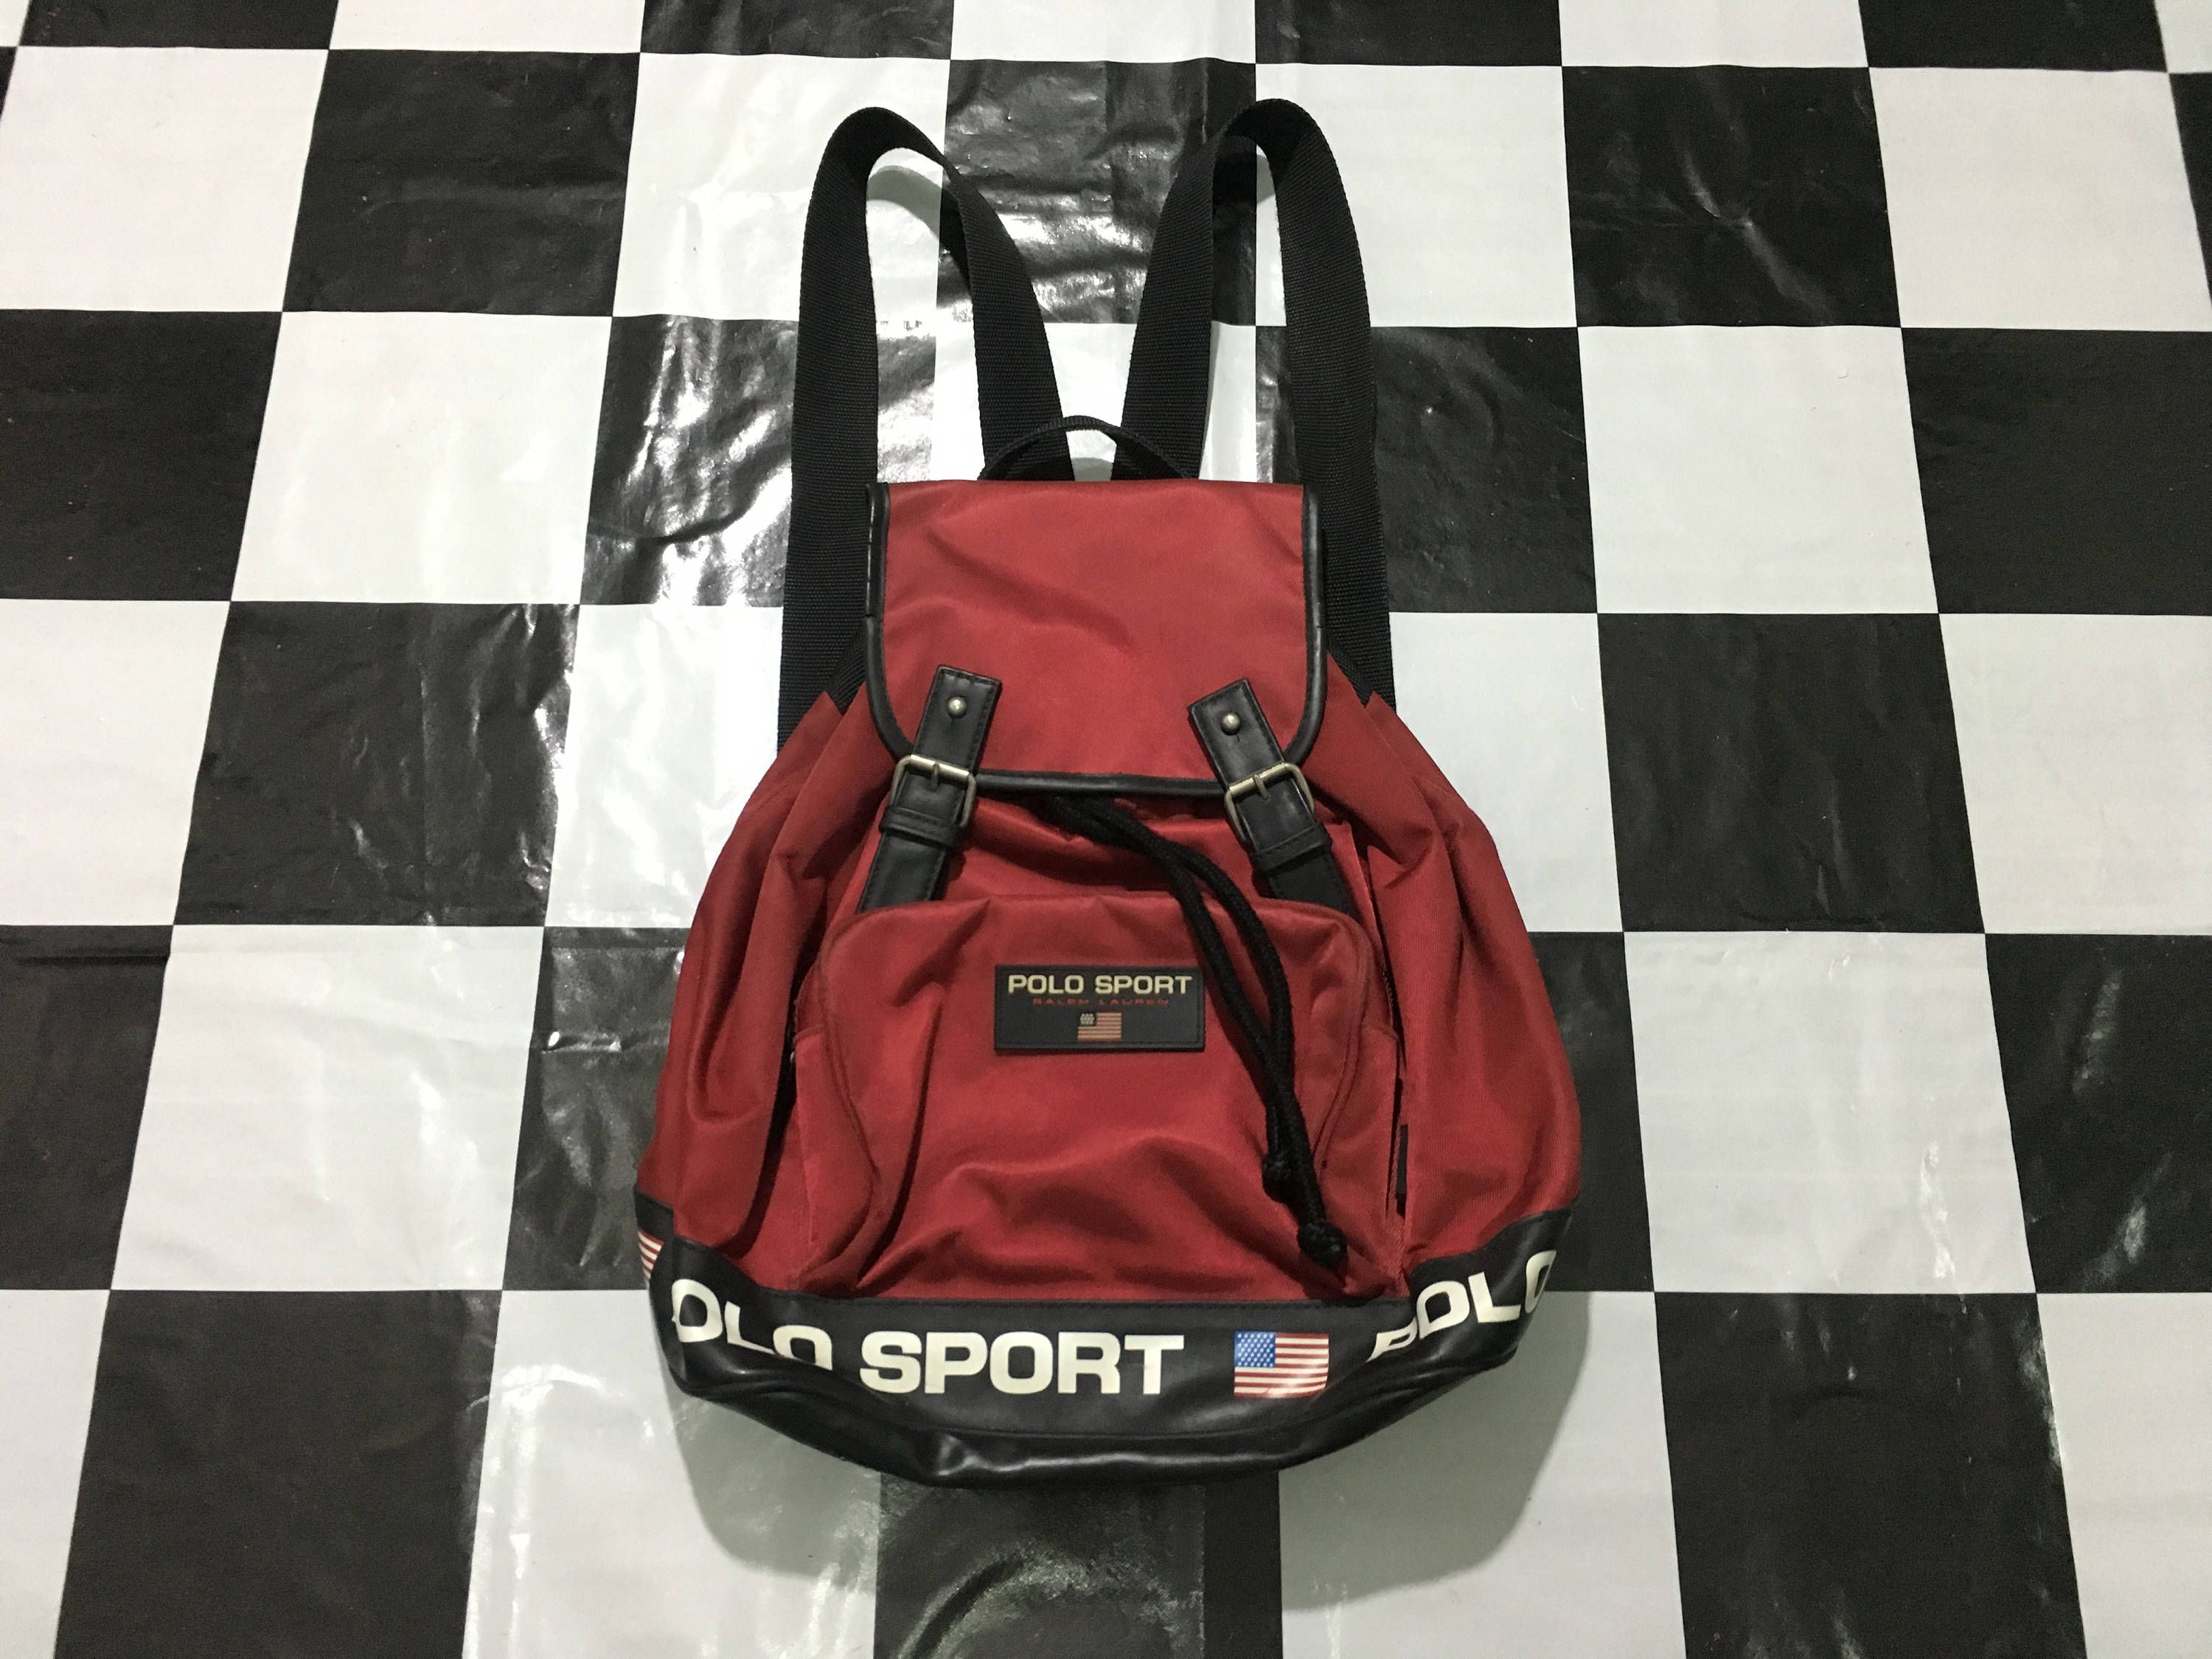 a56a2fb4ee Vintage Polo sport ralph lauren backpack rucksack bag red Excellent  condition by AlivevintageShop on Etsy